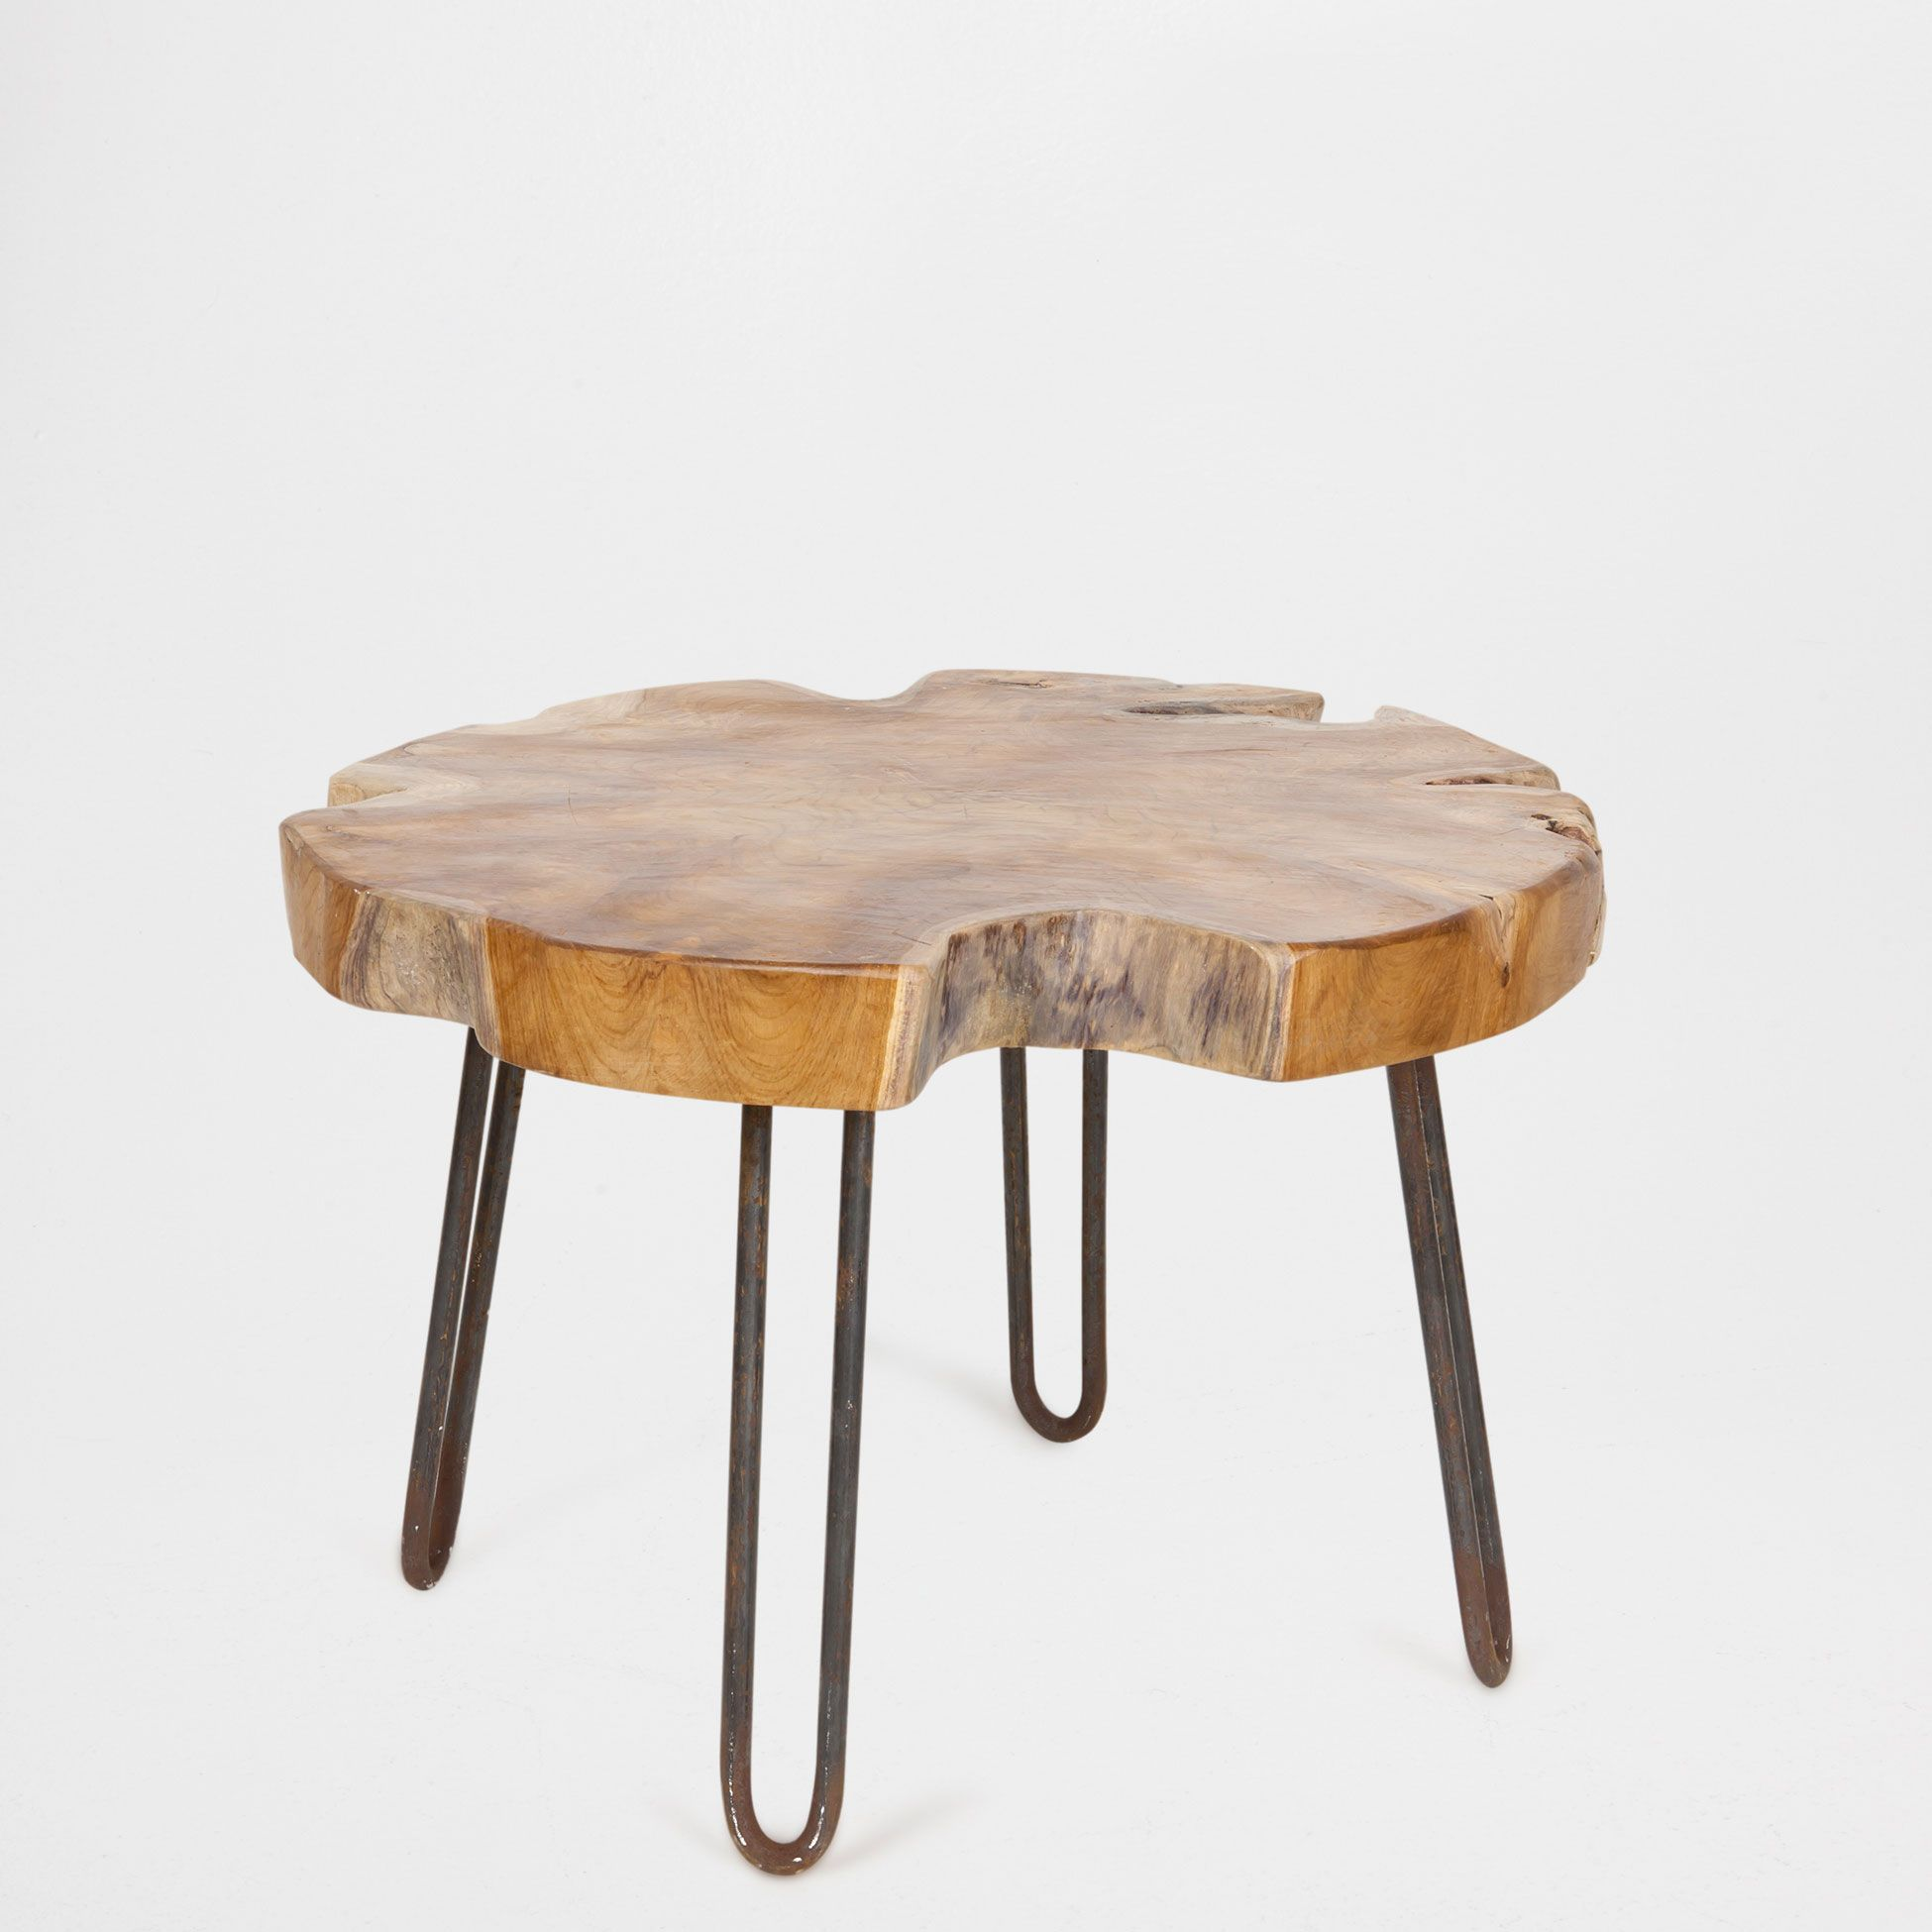 Table Basse En Bois Zara Home Small Trunk-shaped Wooden Table - Occasional Furniture